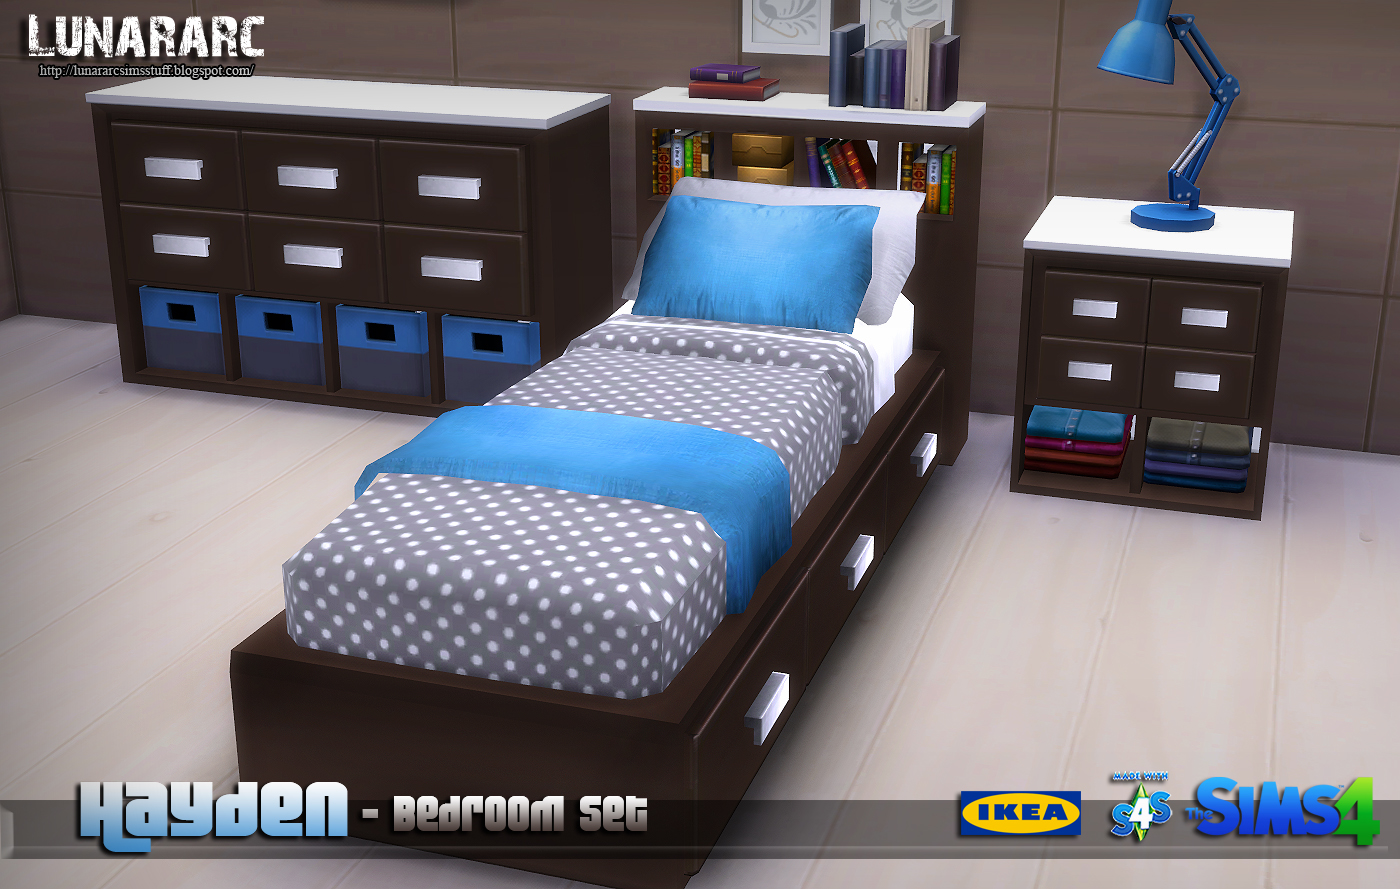 Hayden Bedroom Set by Lunararc